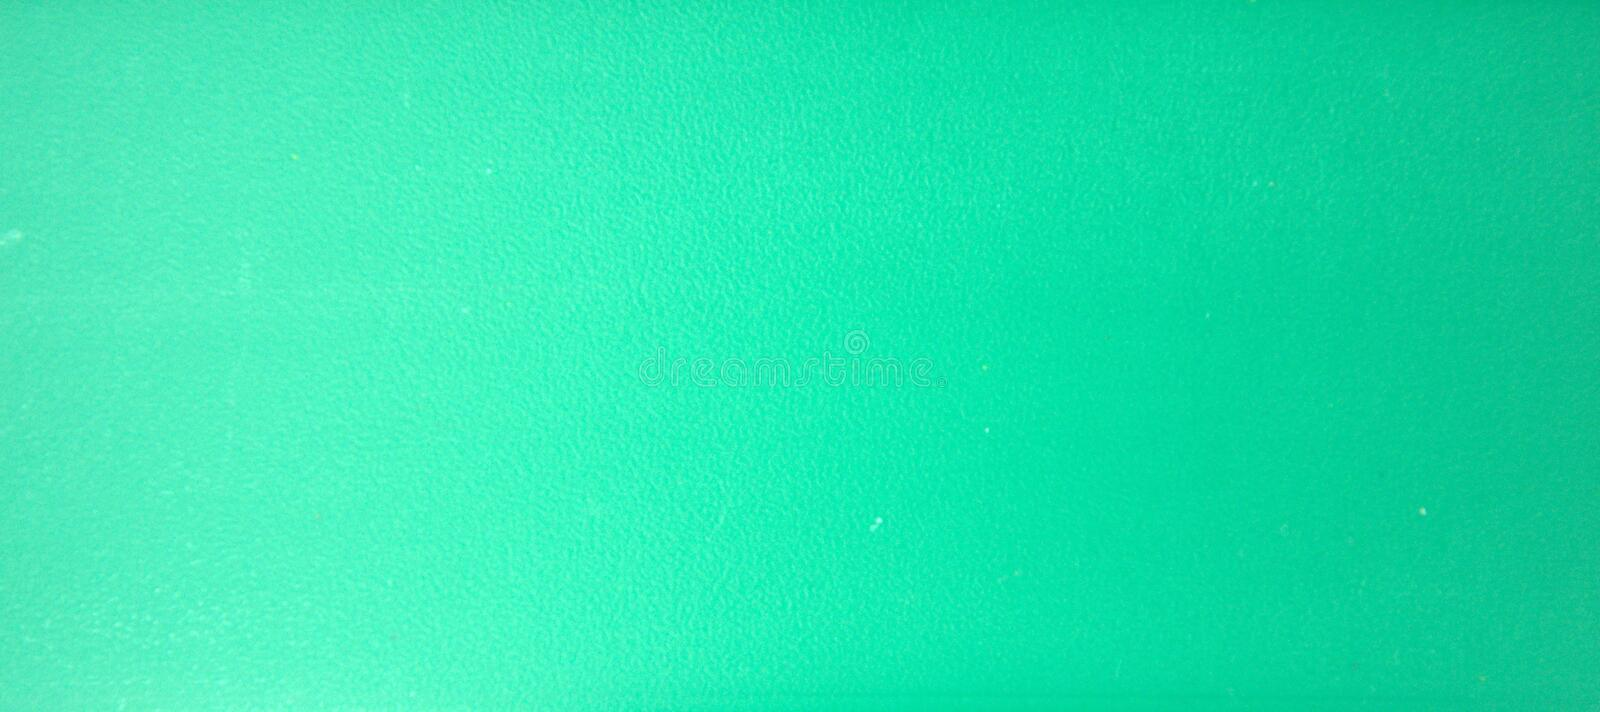 Light green monochrome background, horizontally located. Gradient. Close-up royalty free stock photo